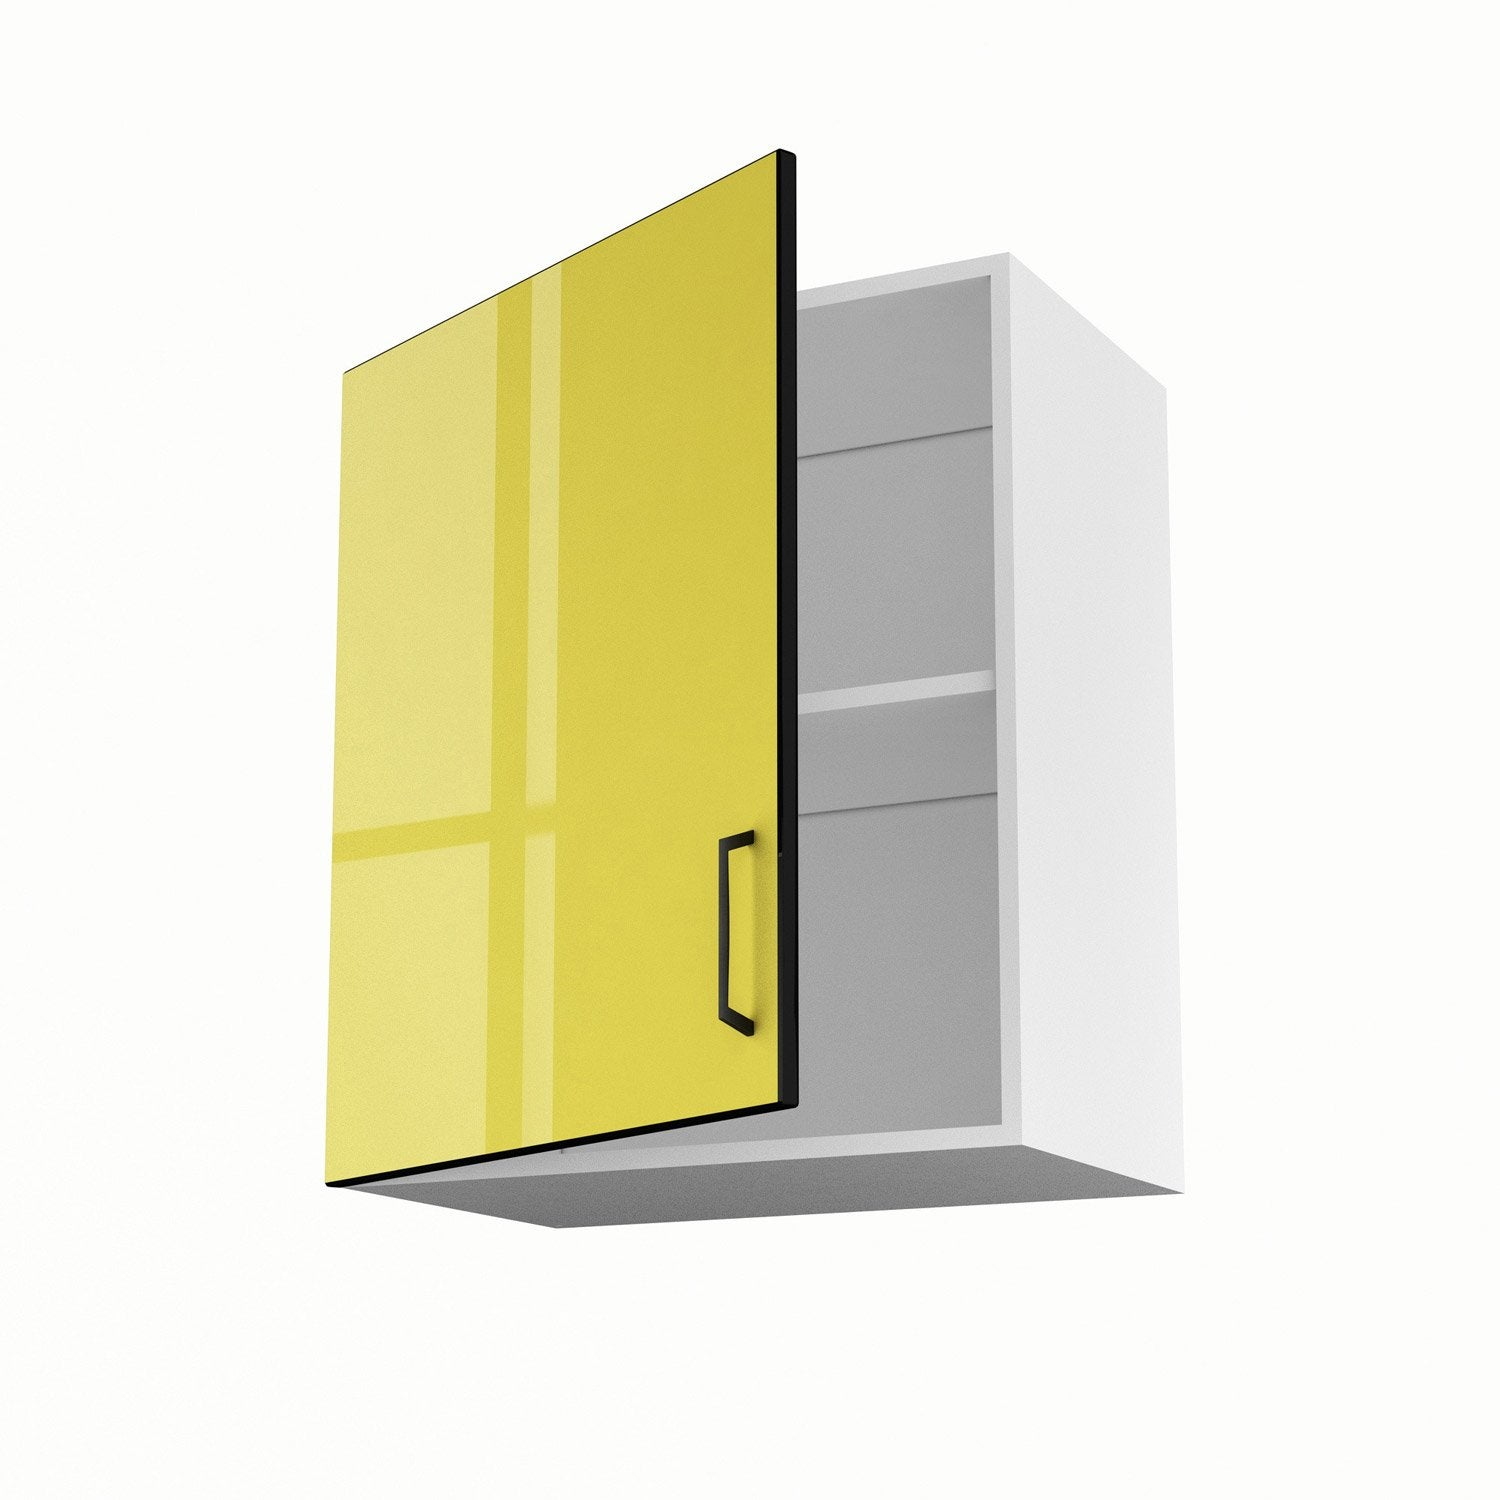 Meuble de cuisine haut jaune 1 porte pop h70xl60xp35 cm for Portes elements cuisine leroy merlin